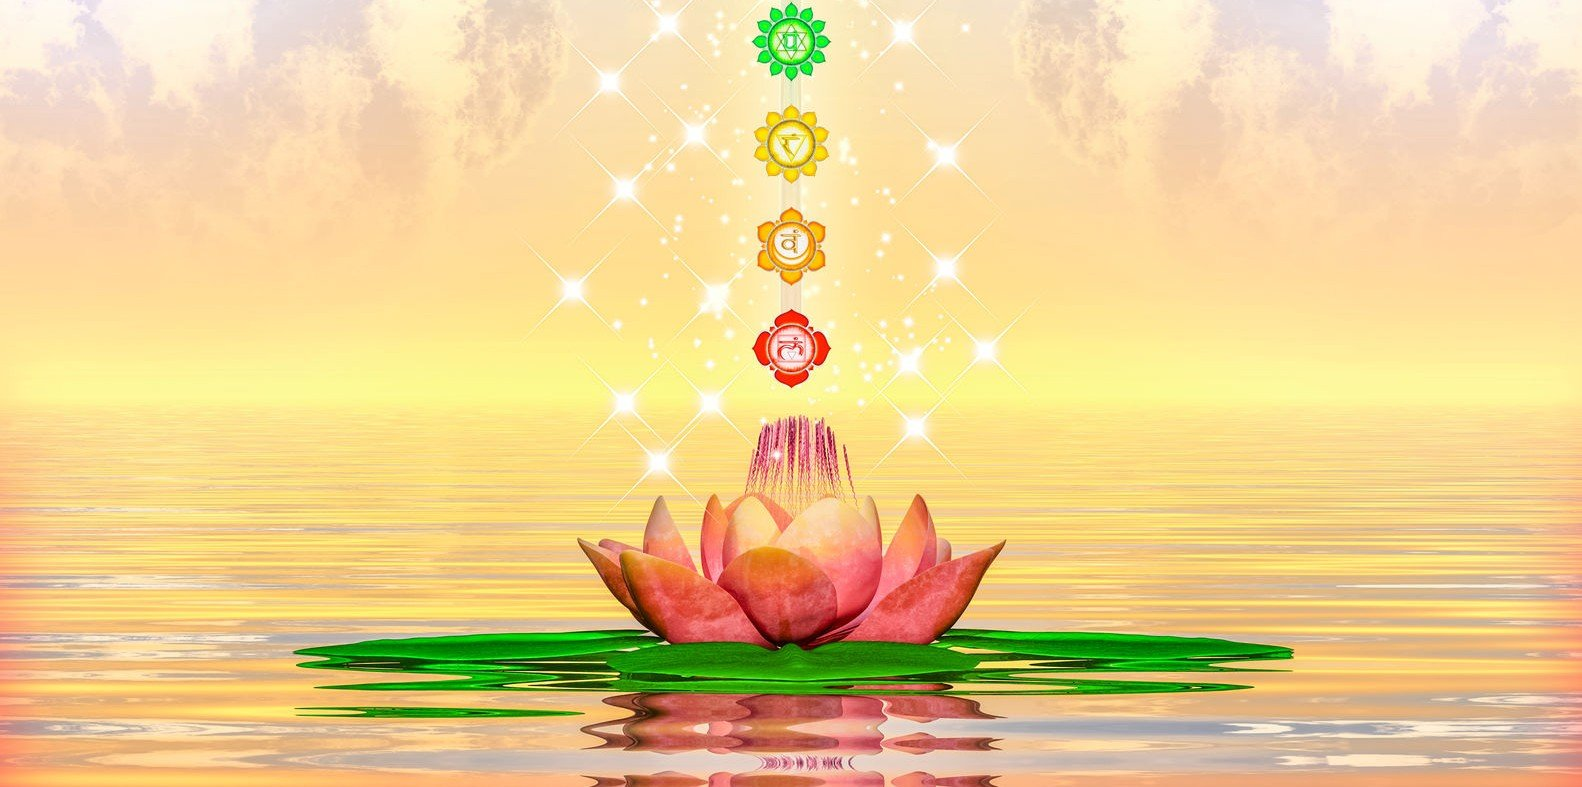 Naturopathic Chakra Medicine Spinning The Energetic Centers